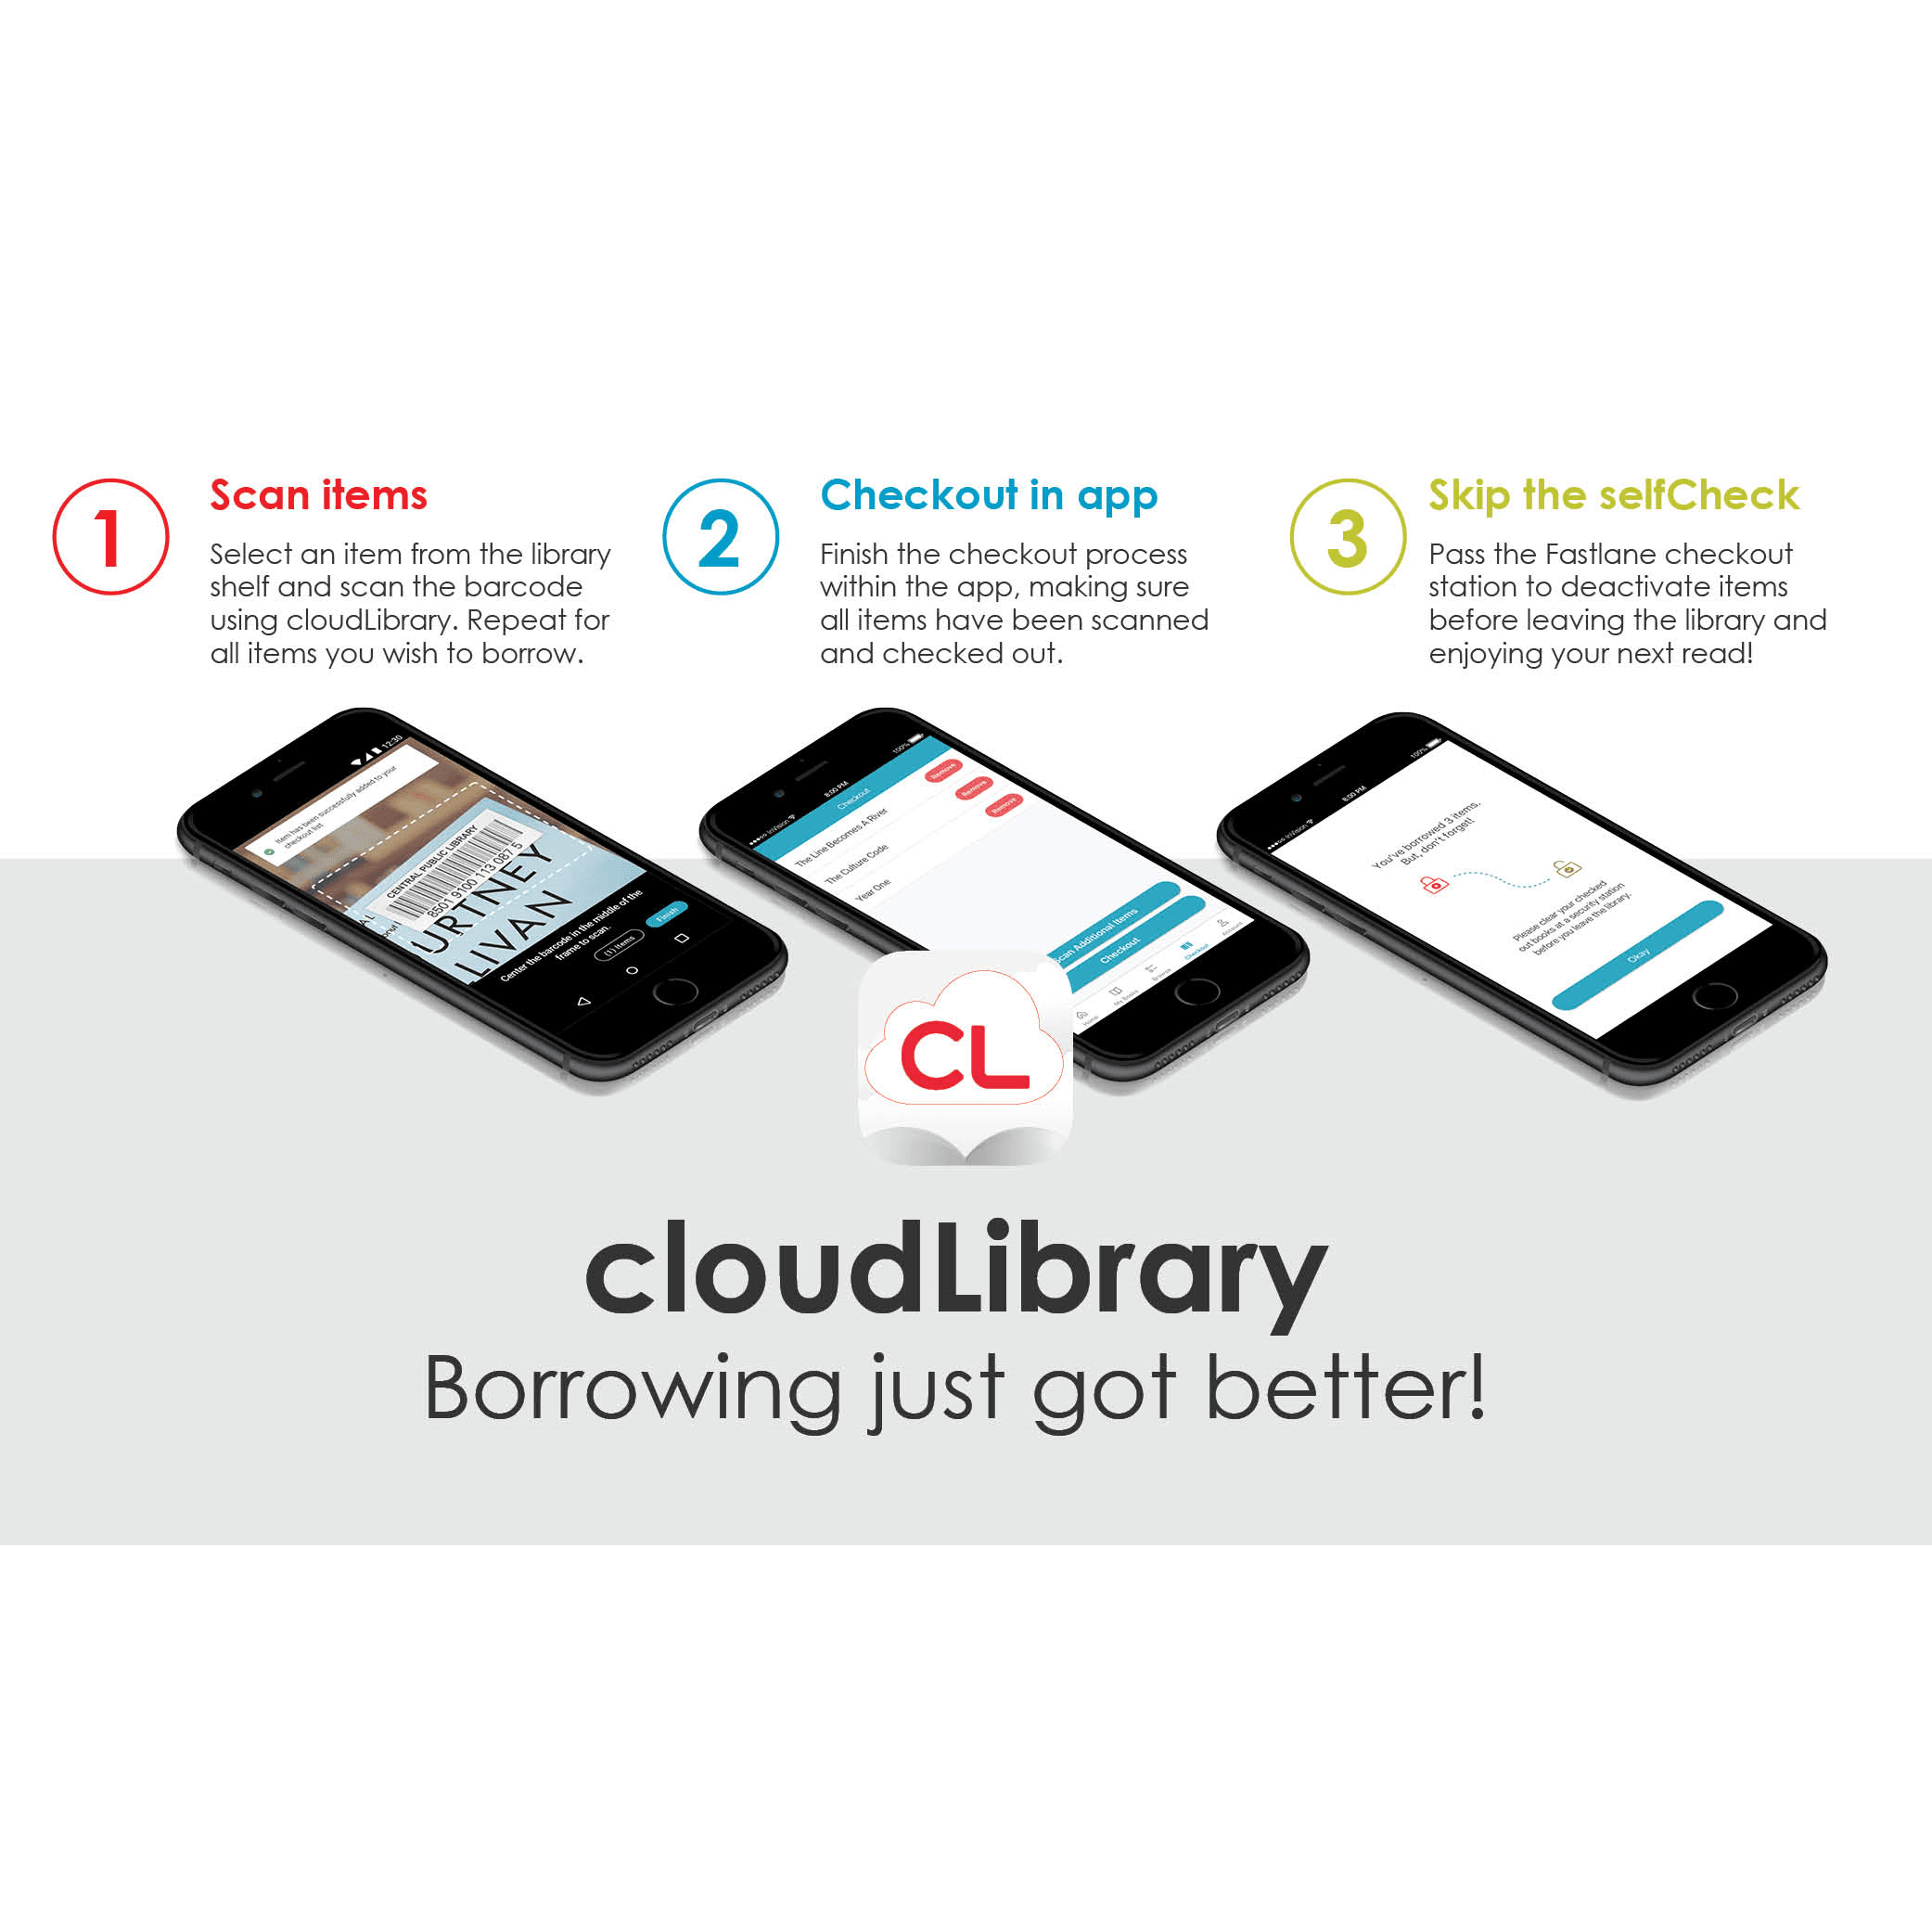 Cloudlibrary checkout